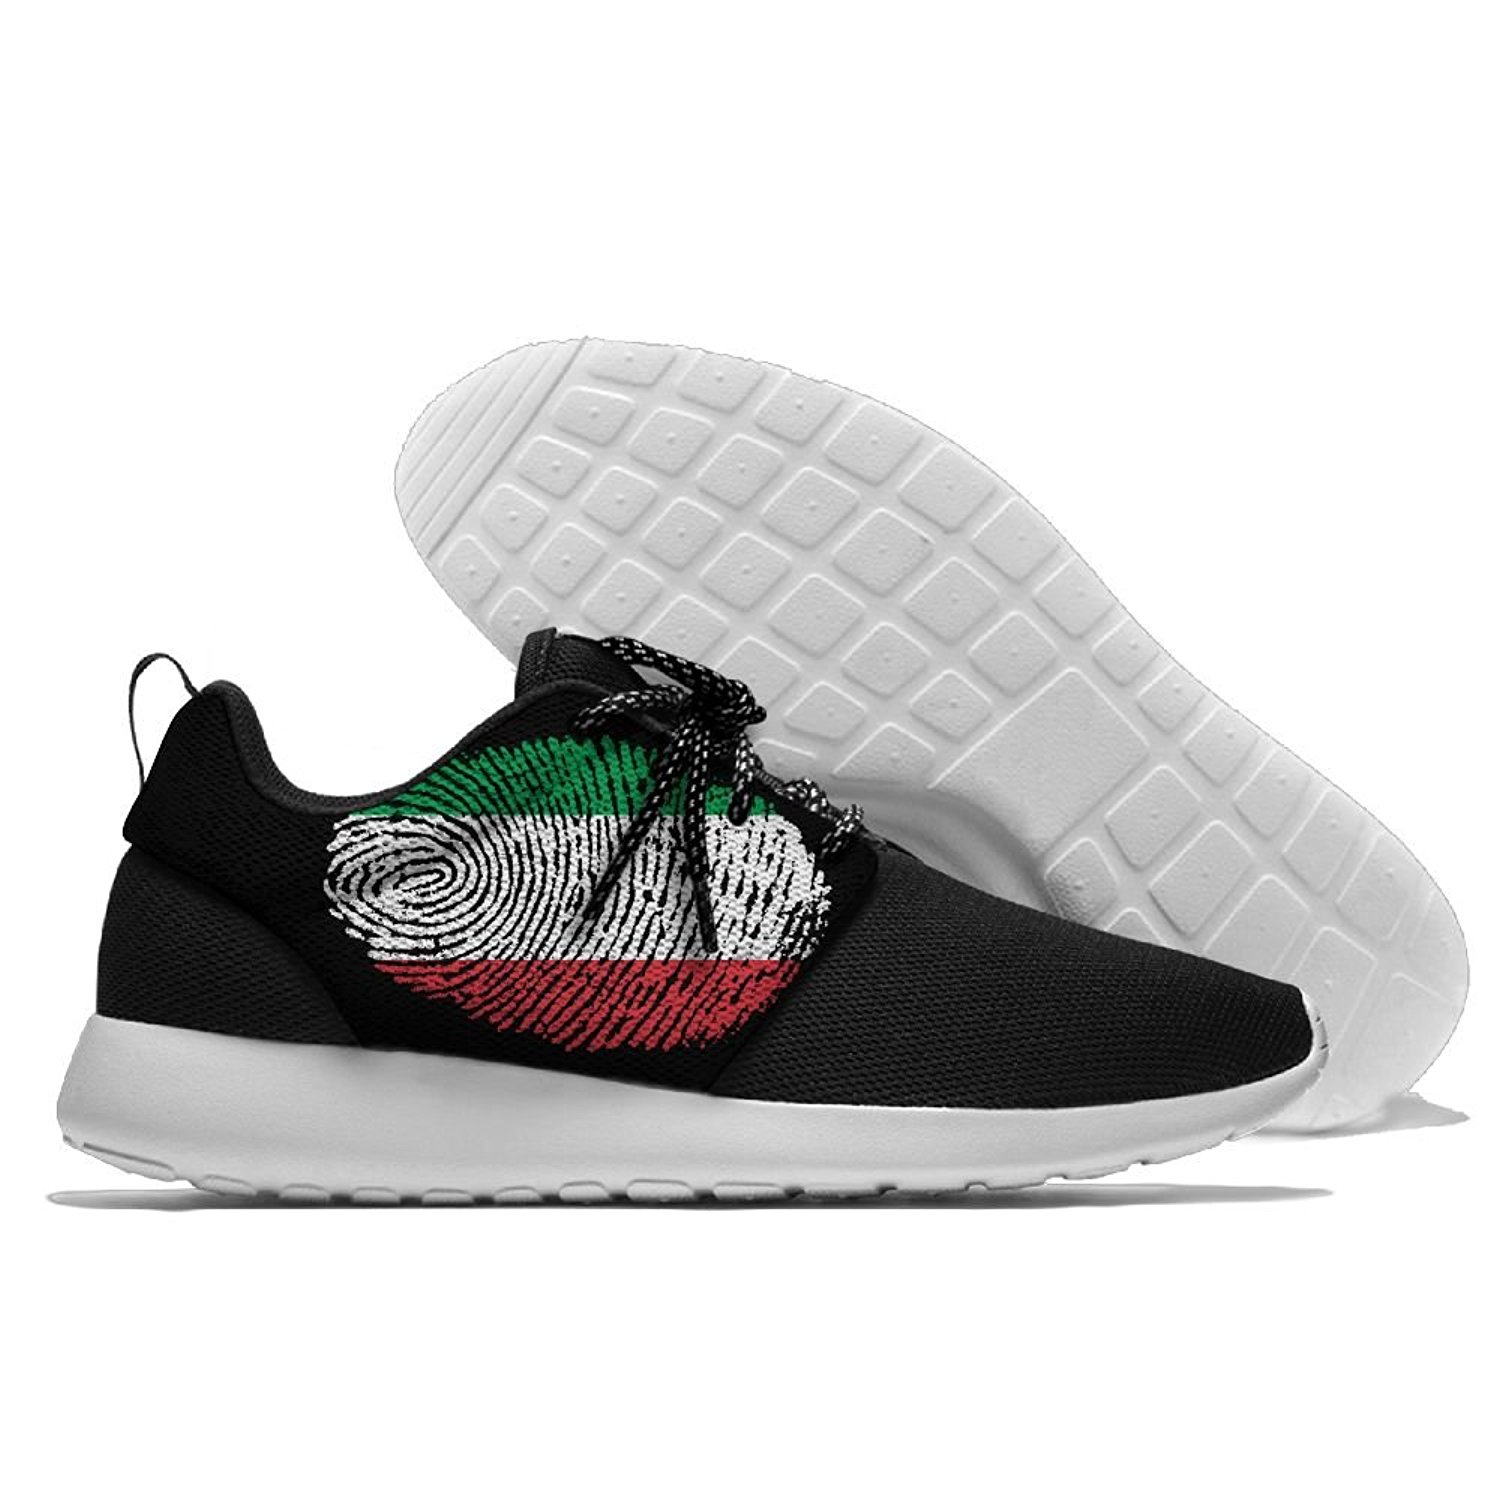 Men Women Gym Shoes Athletic Sneakers Italy Flag Fingerprint Mesh Training Shoes Running Shoes